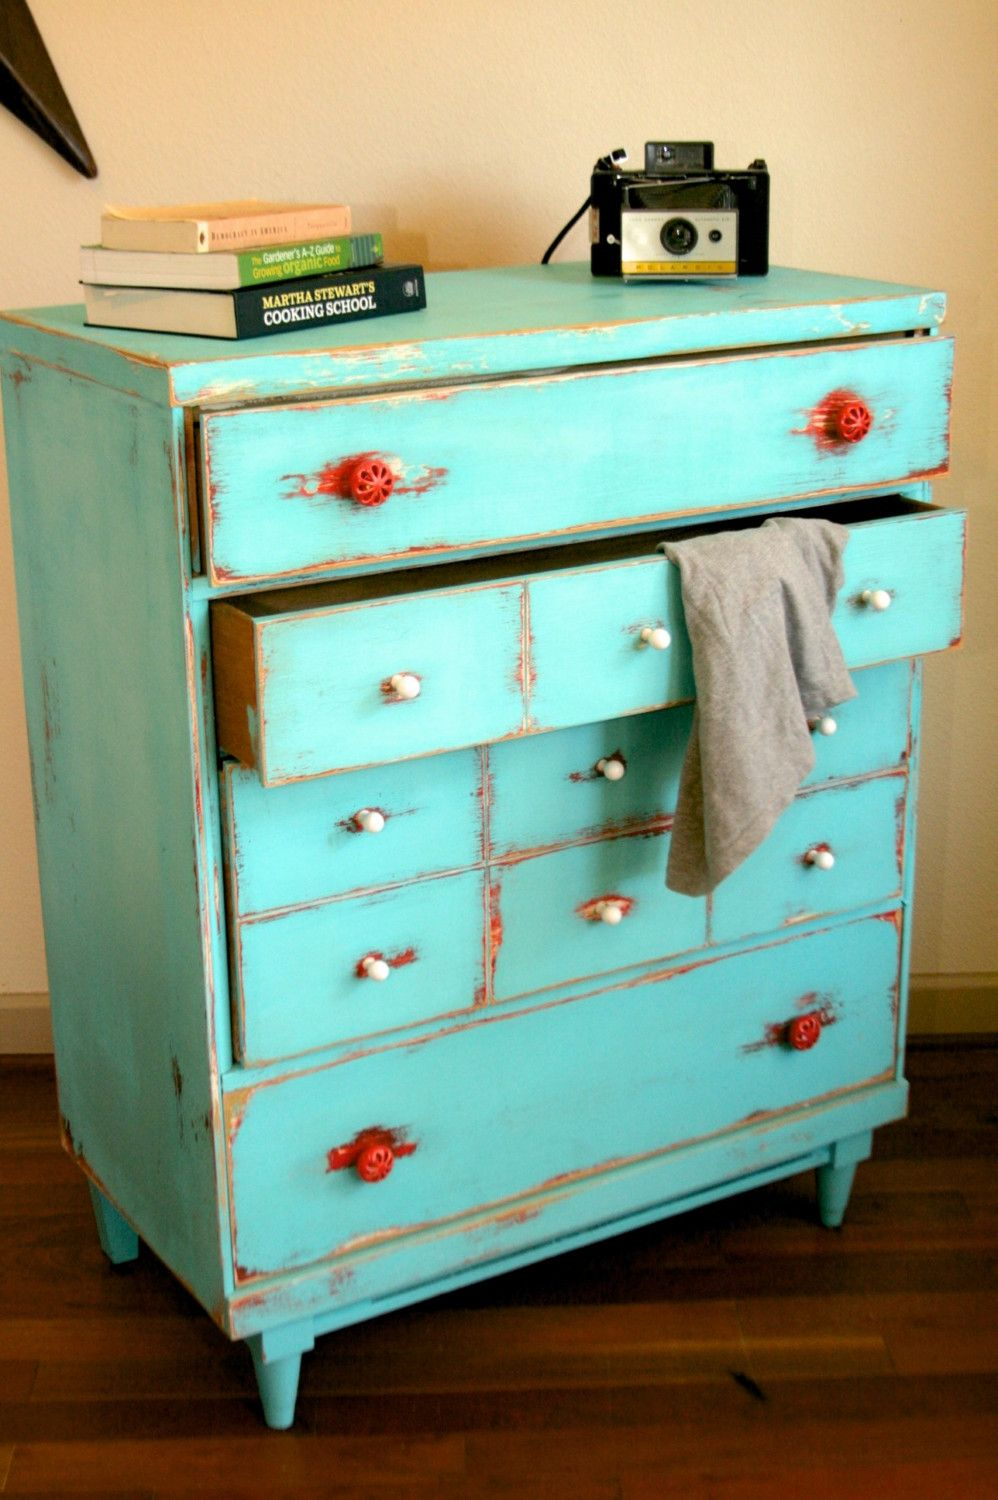 Antique turquoise dresser. Change the color of pieces like this seasonally! - Antique Turquoise Dresser. Change The Color Of Pieces Like This